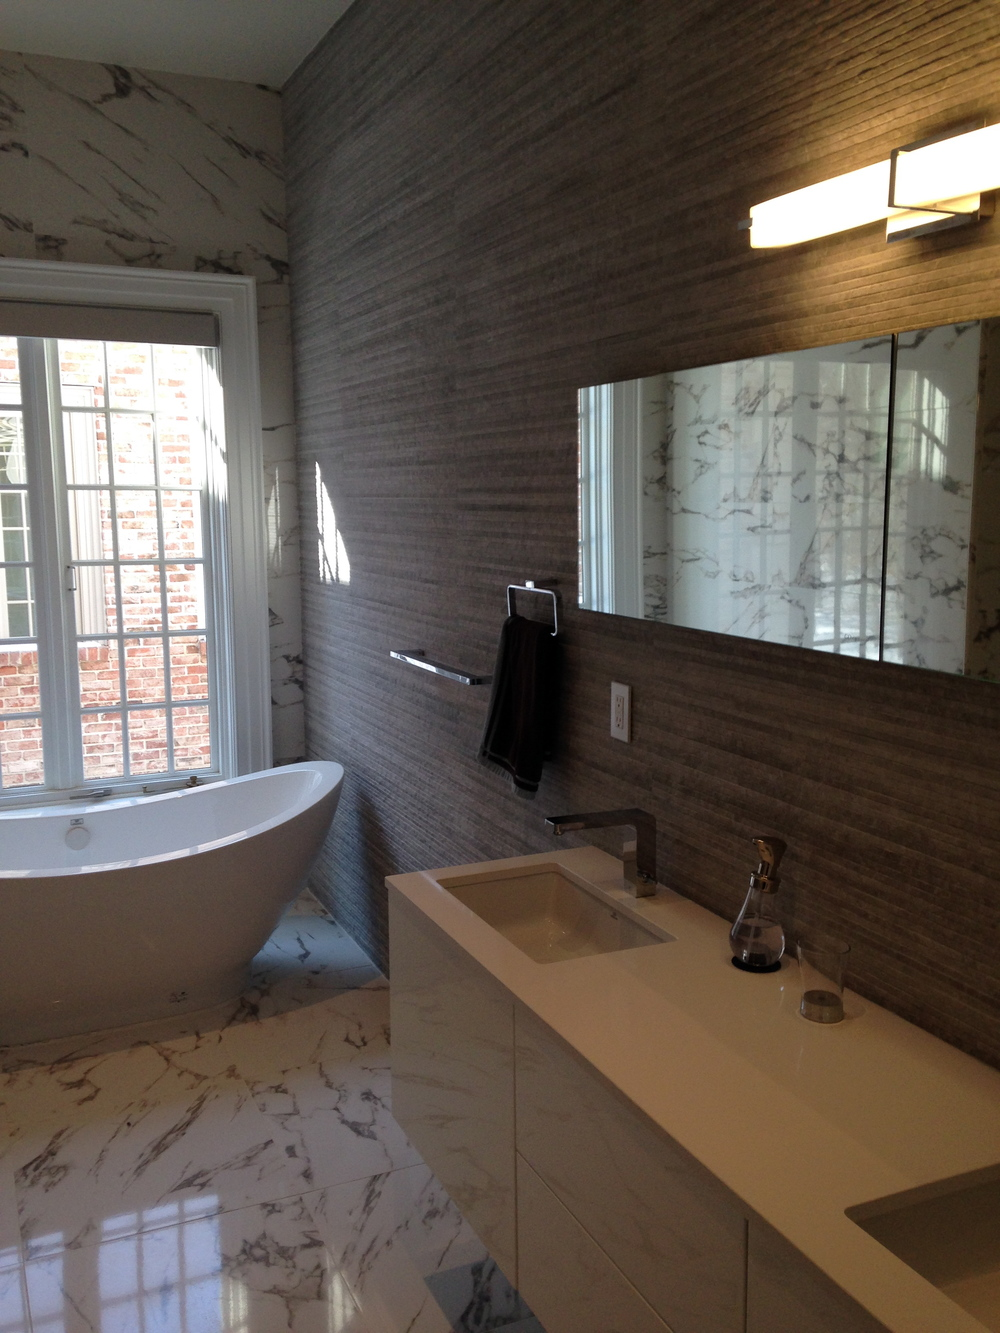 Textured wall tile and smooth marble on the floor of this contemporary bath help to create a spa like feel.